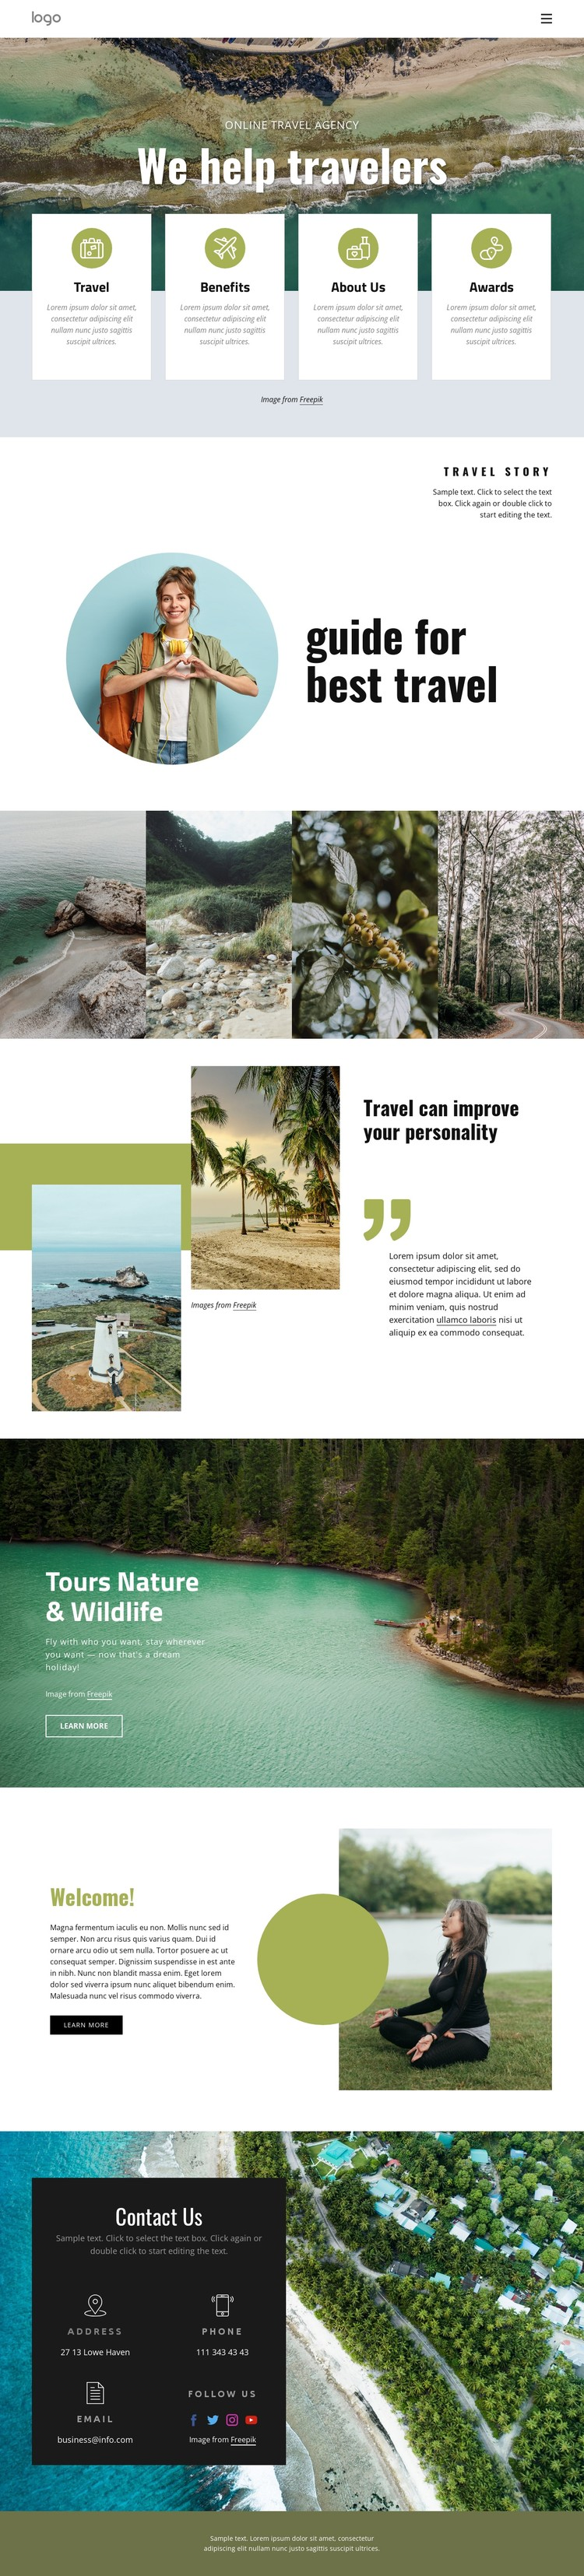 We help manage your trip CSS Template